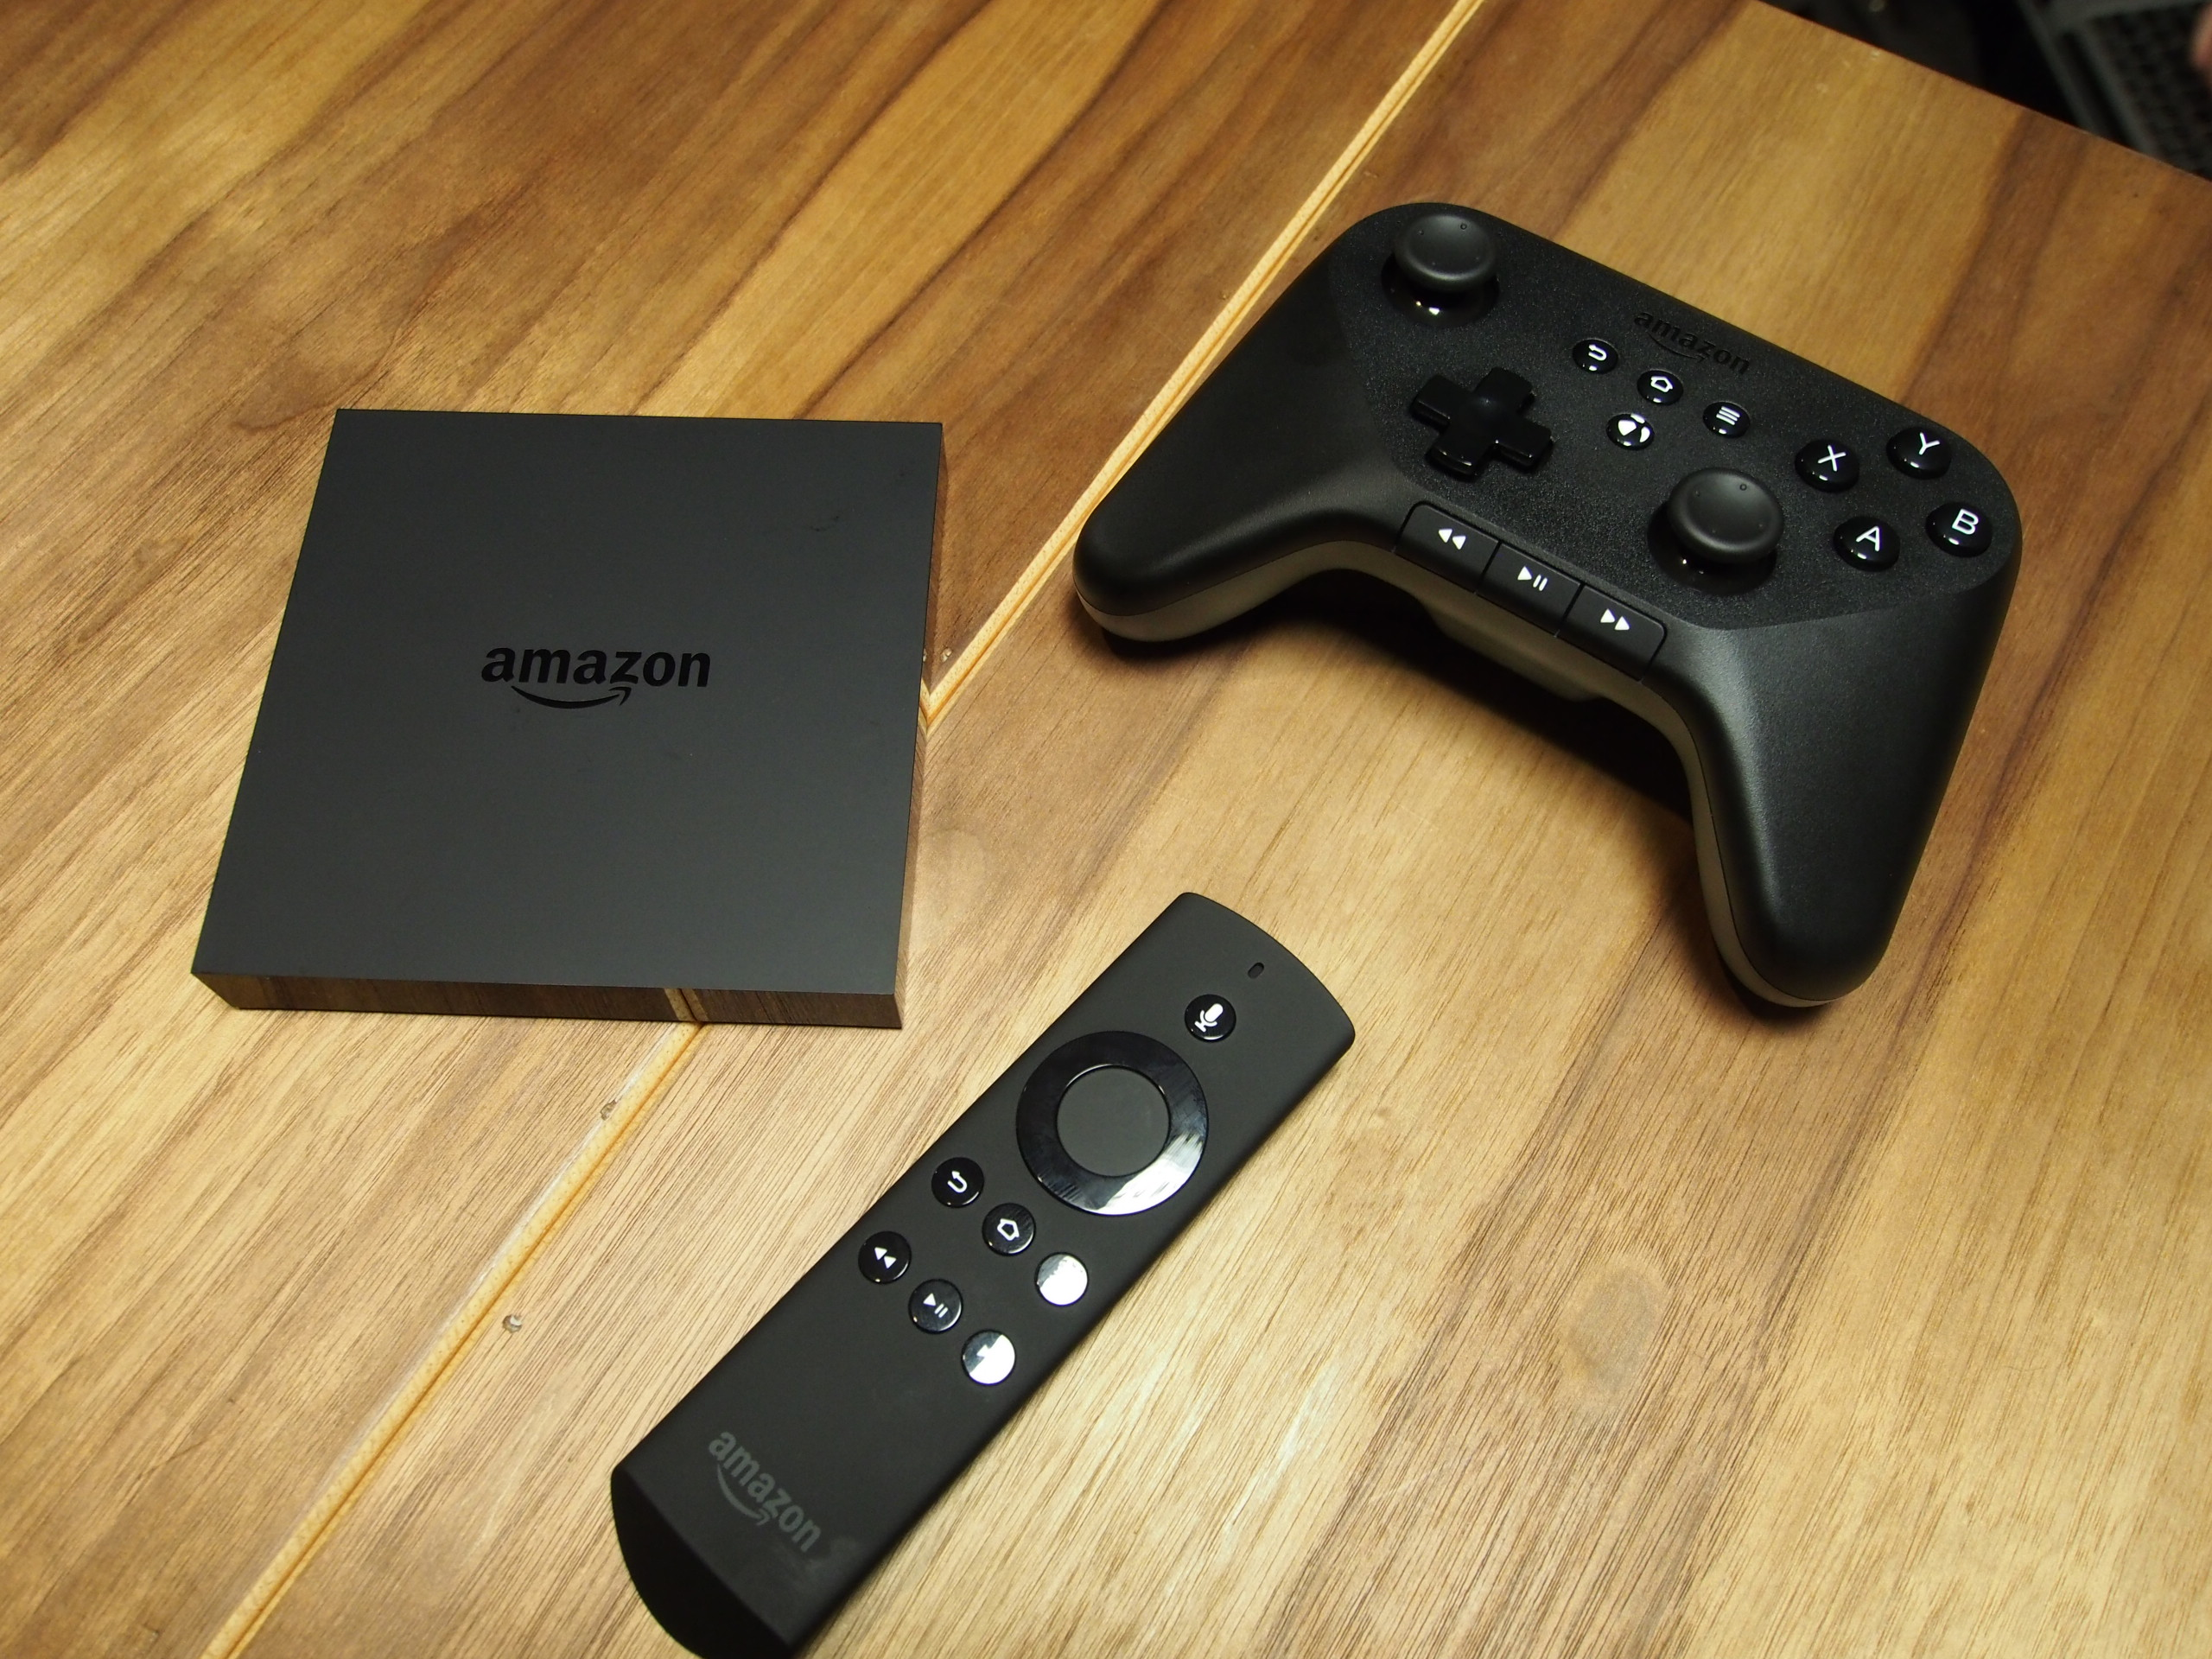 amazon fire tv close up Broadcast 2.0: Television is about to enjoy its biggest renaissance in 50 years